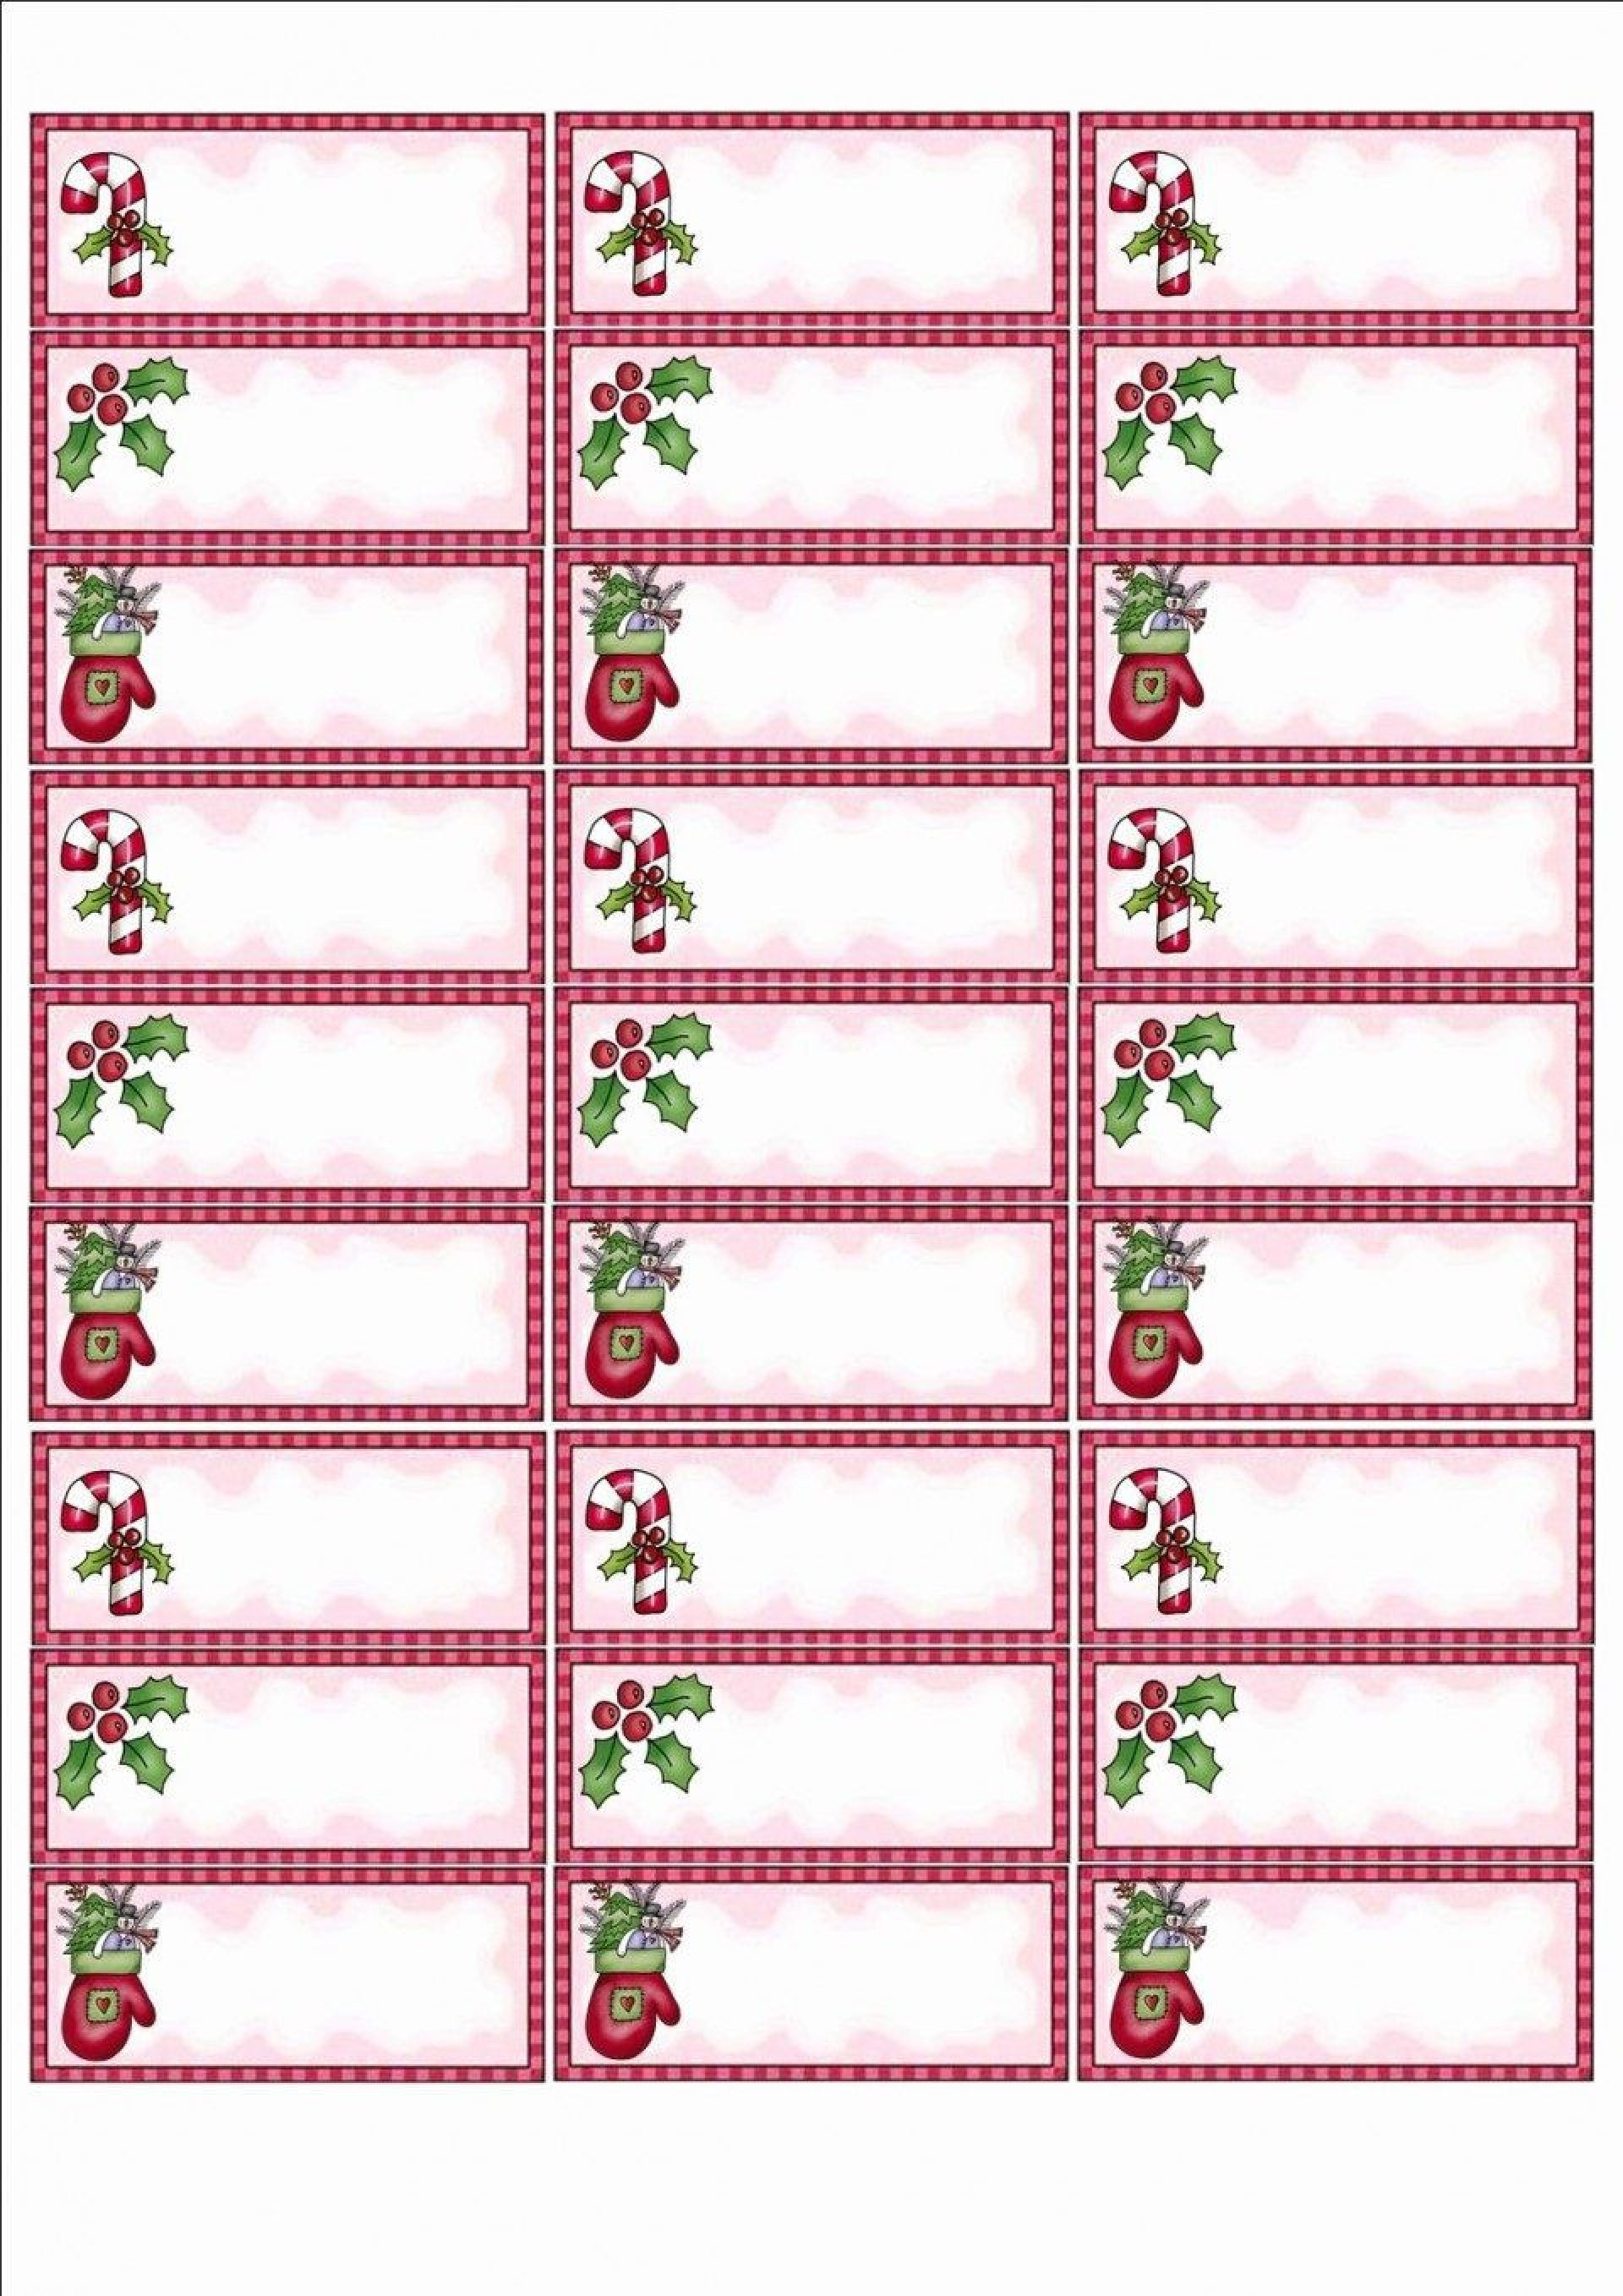 006 Awful Free Christma Addres Label Template Avery 5160 Example 1920